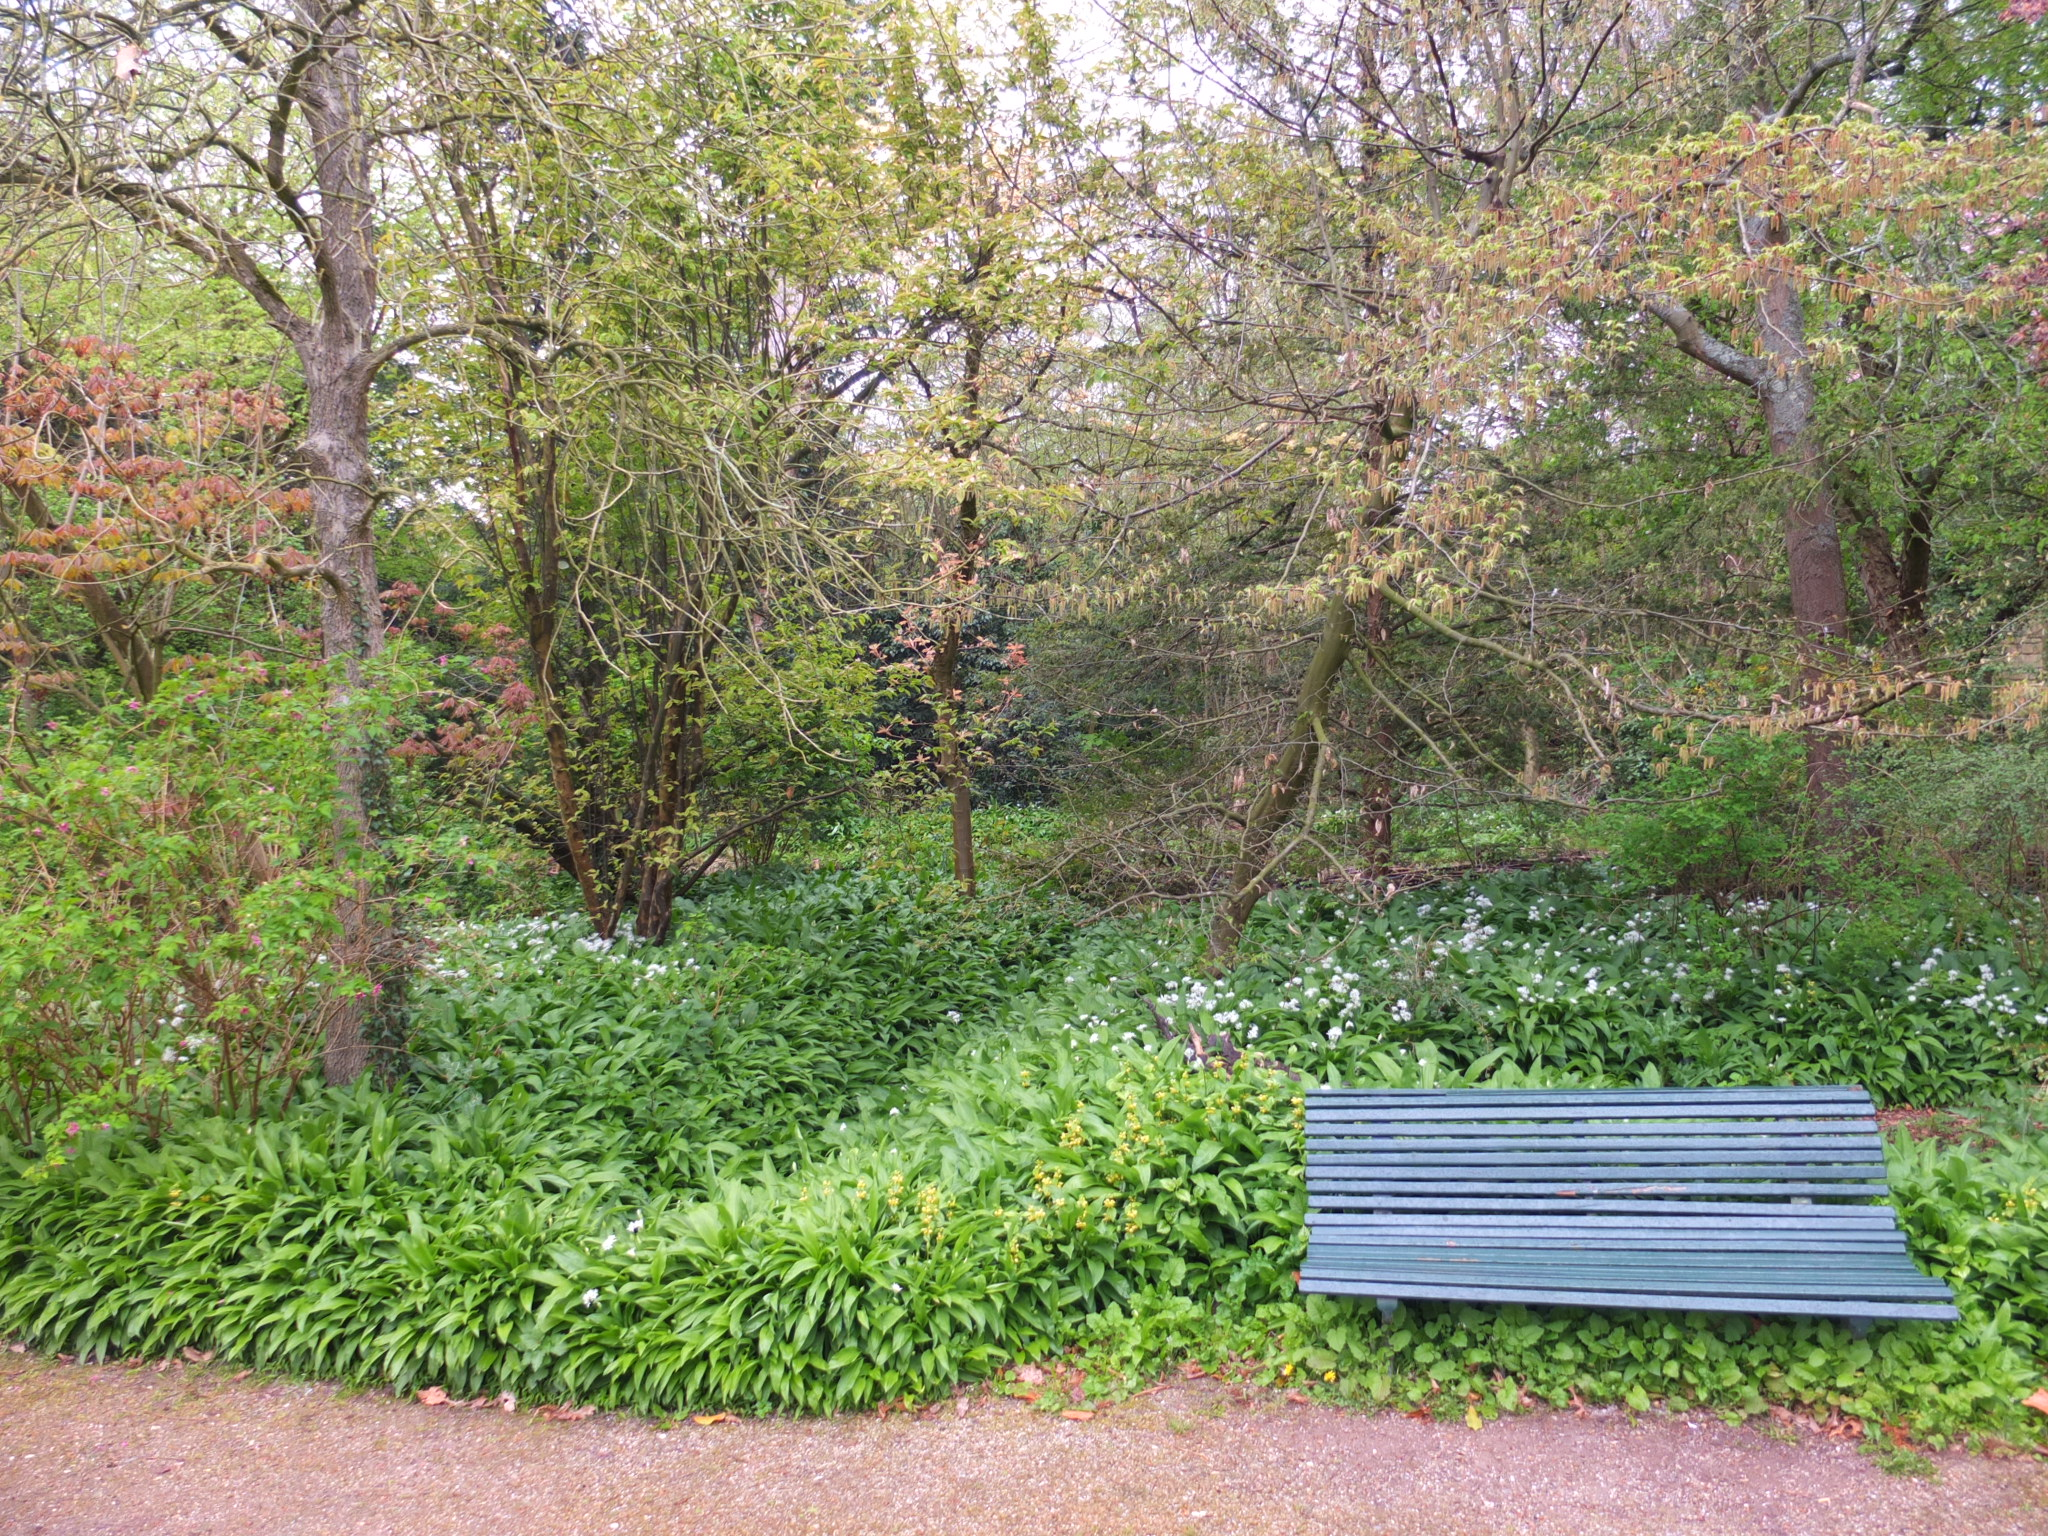 The layered structure of a food forest, with among many others, wild garlic, thimbleberry and chinese quince. ©Natvise, Food Forest De Overtuin, 2019.